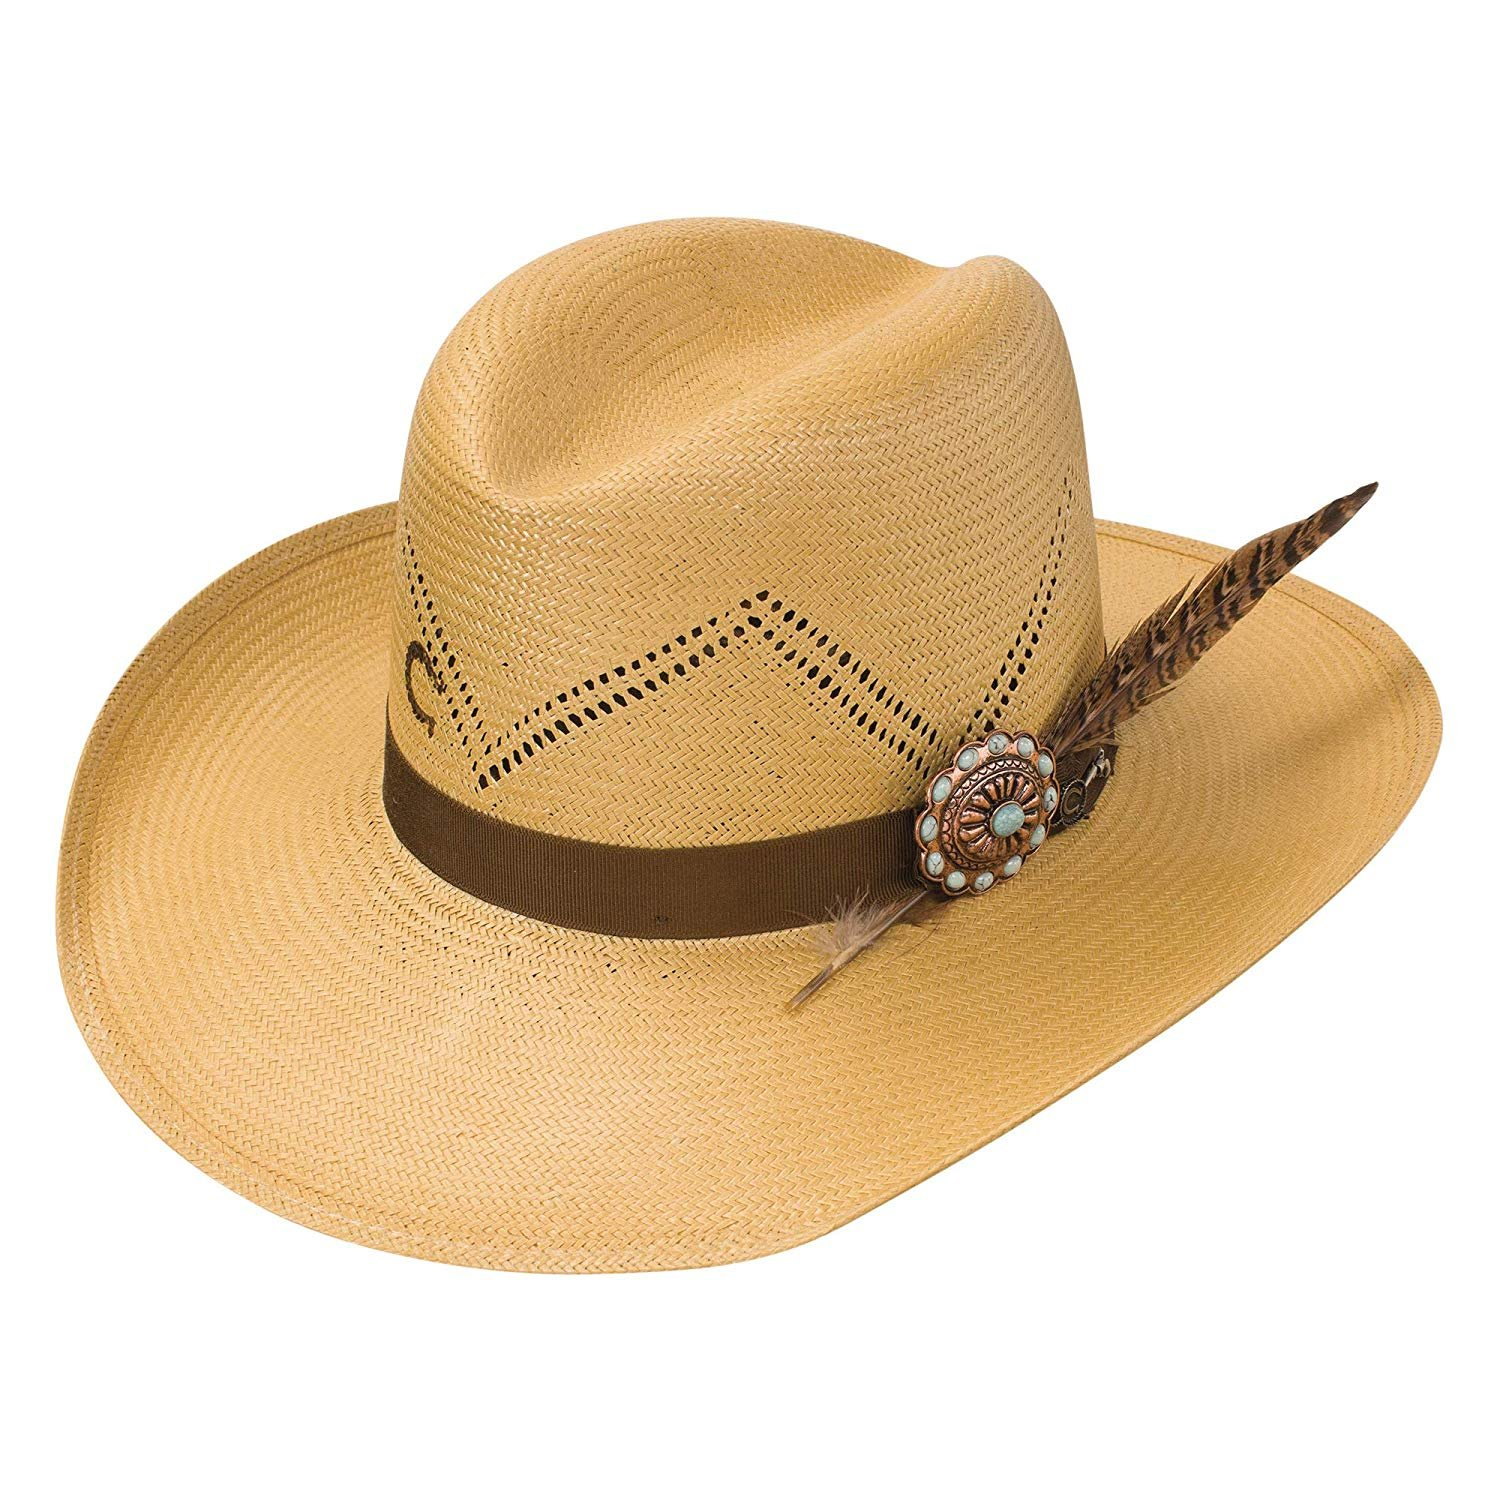 2b23389c9 Details about Charlie One Horse Hustlin Straw Cowboy Hat Size Small